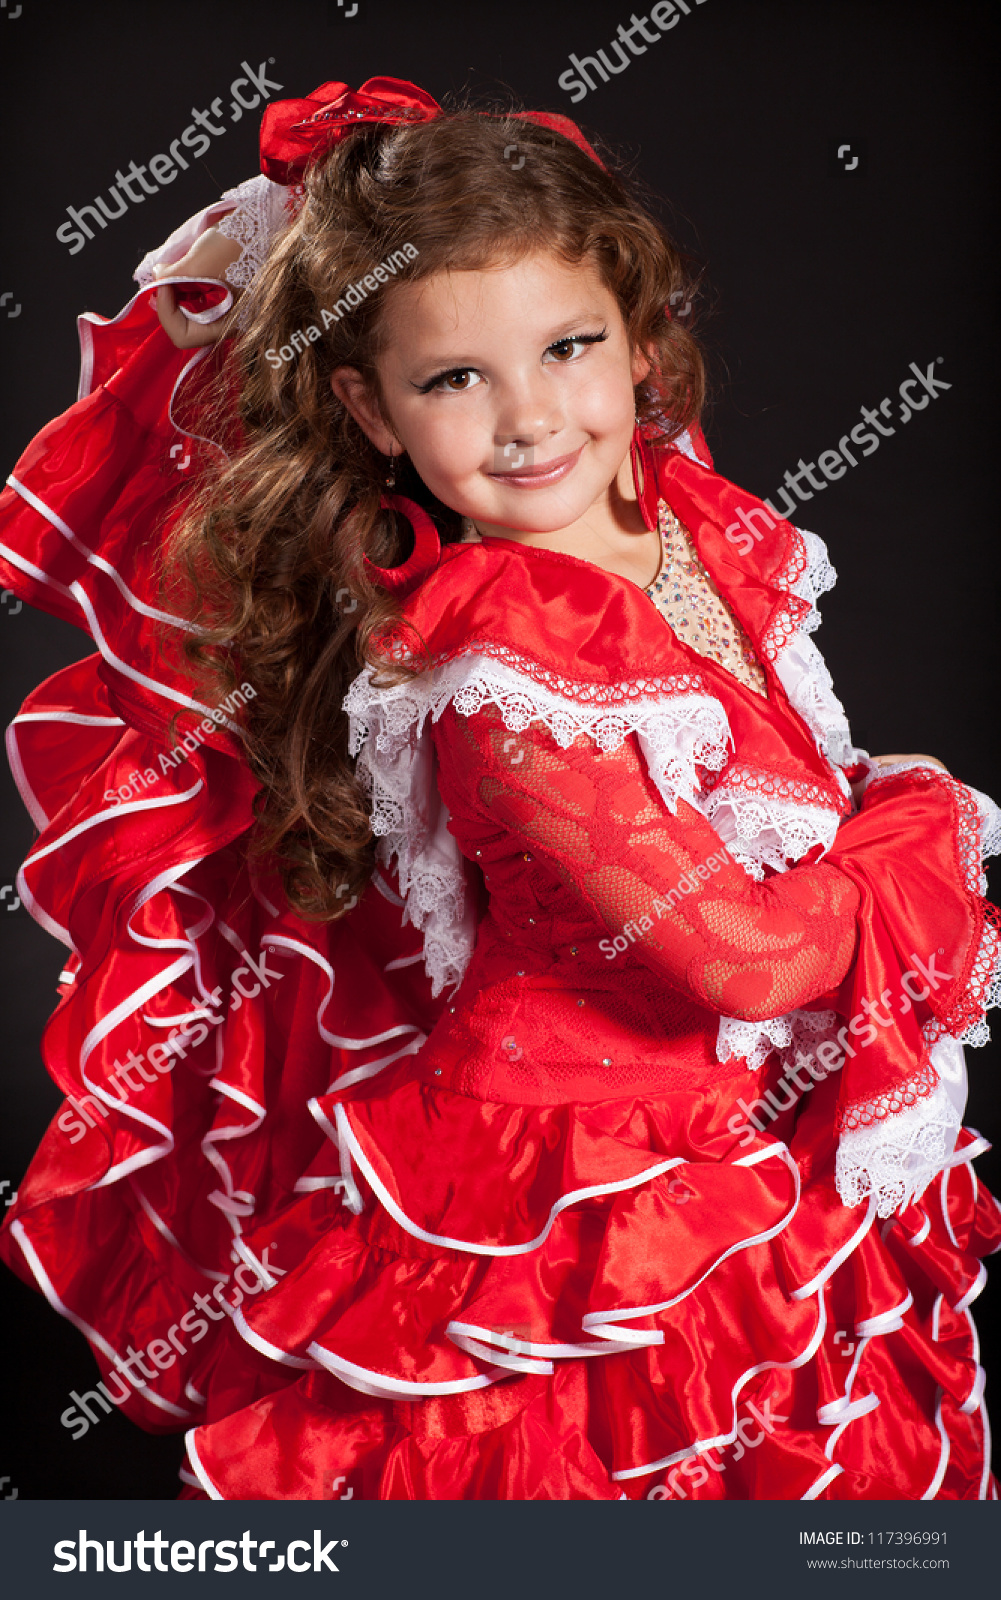 ddbcffd88510 Adorable toddler girl dancing flamenco in traditional spanish red dress. Little  child from Andalusia with